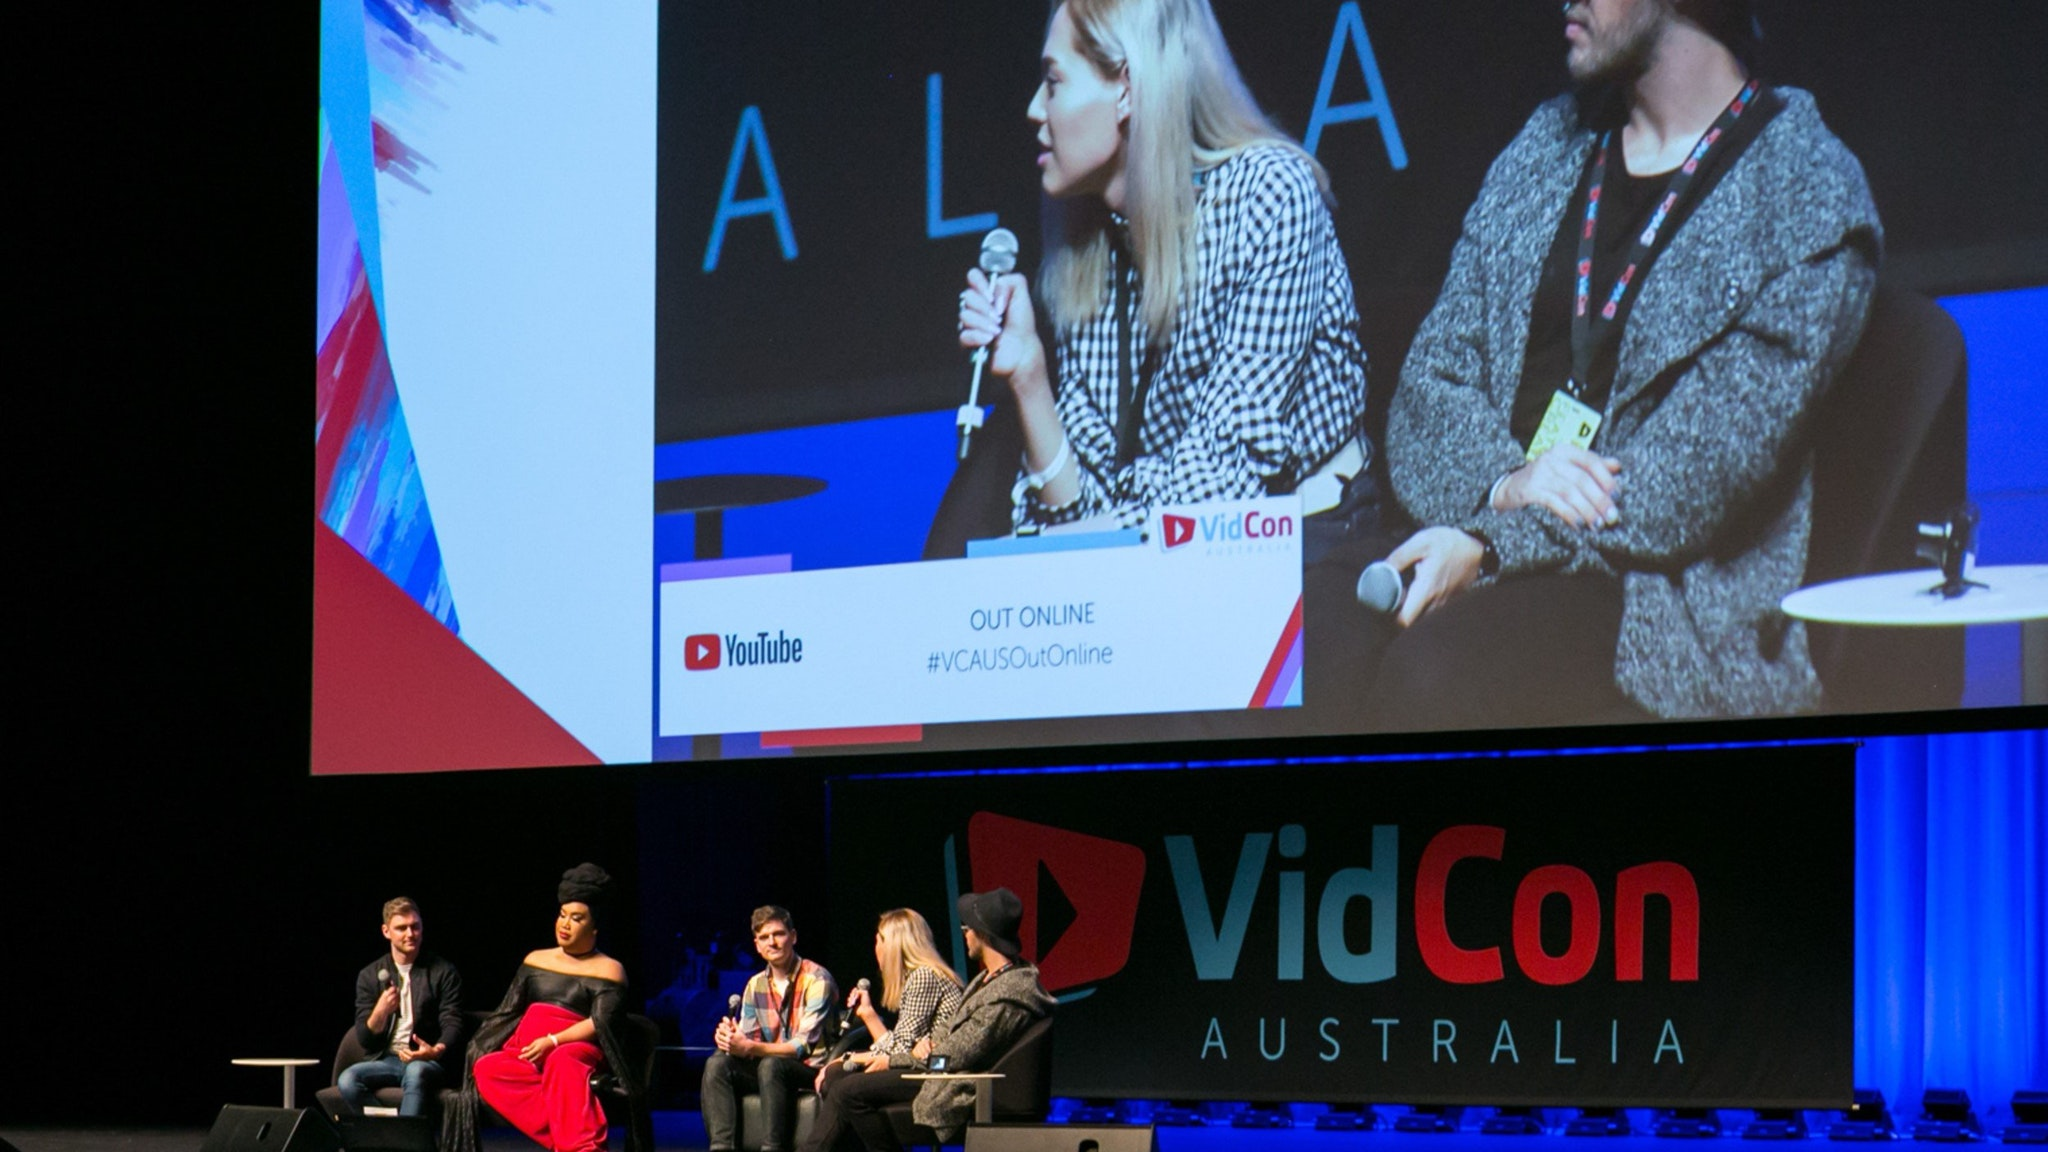 Panel of content creators on stage at Vidcon